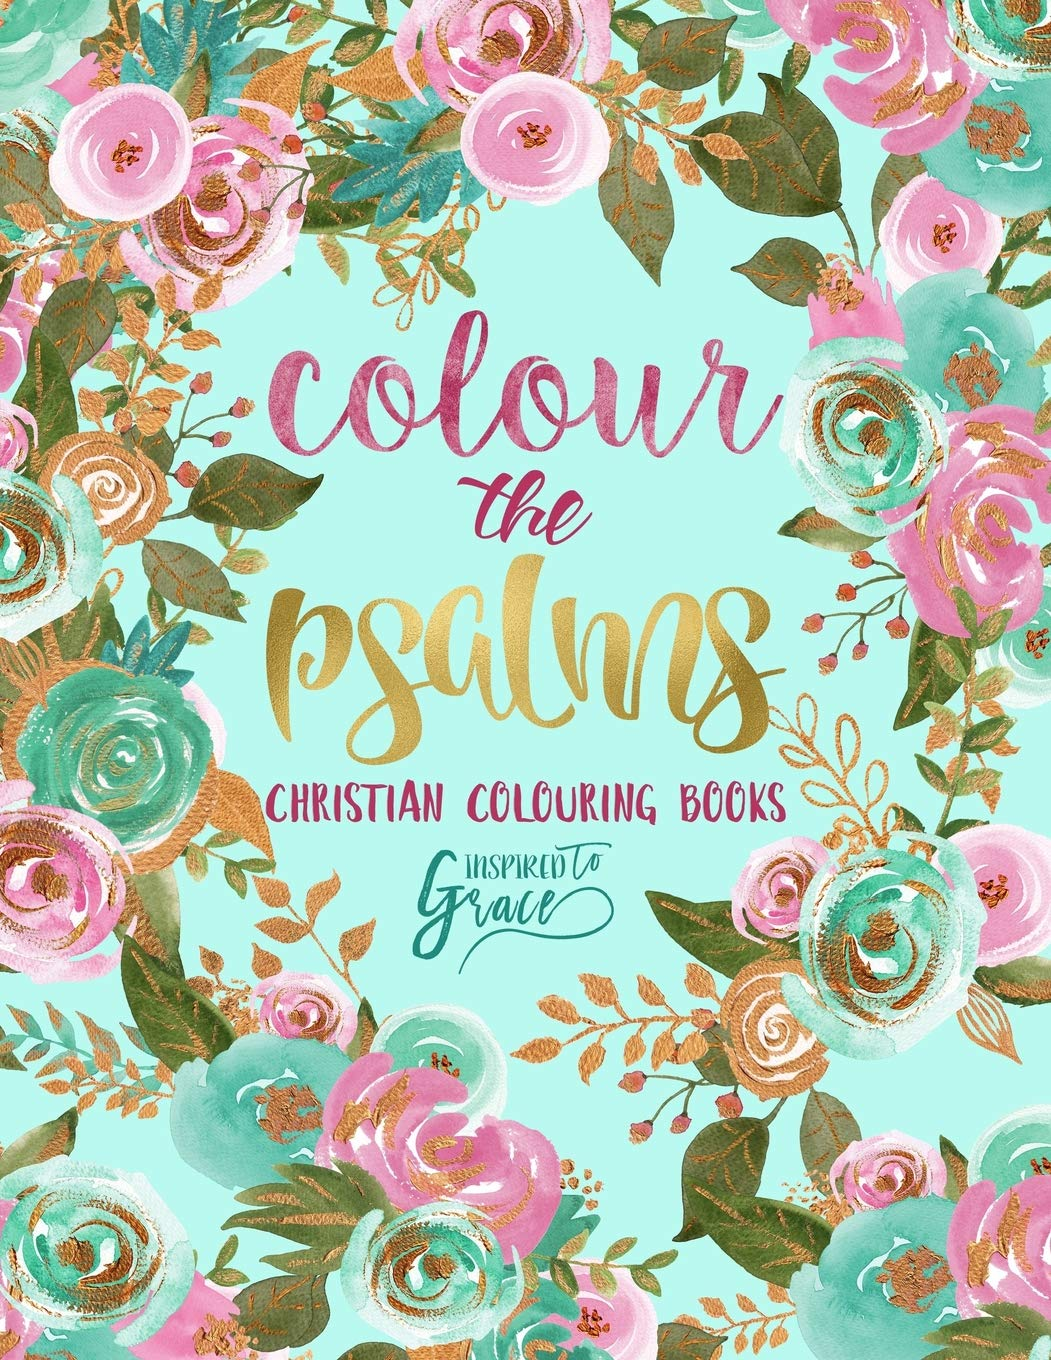 Colour The Psalms  Inspired To Grace  Christian Colouring Books  A Bible Verse Colouring Book For Adults And Teens